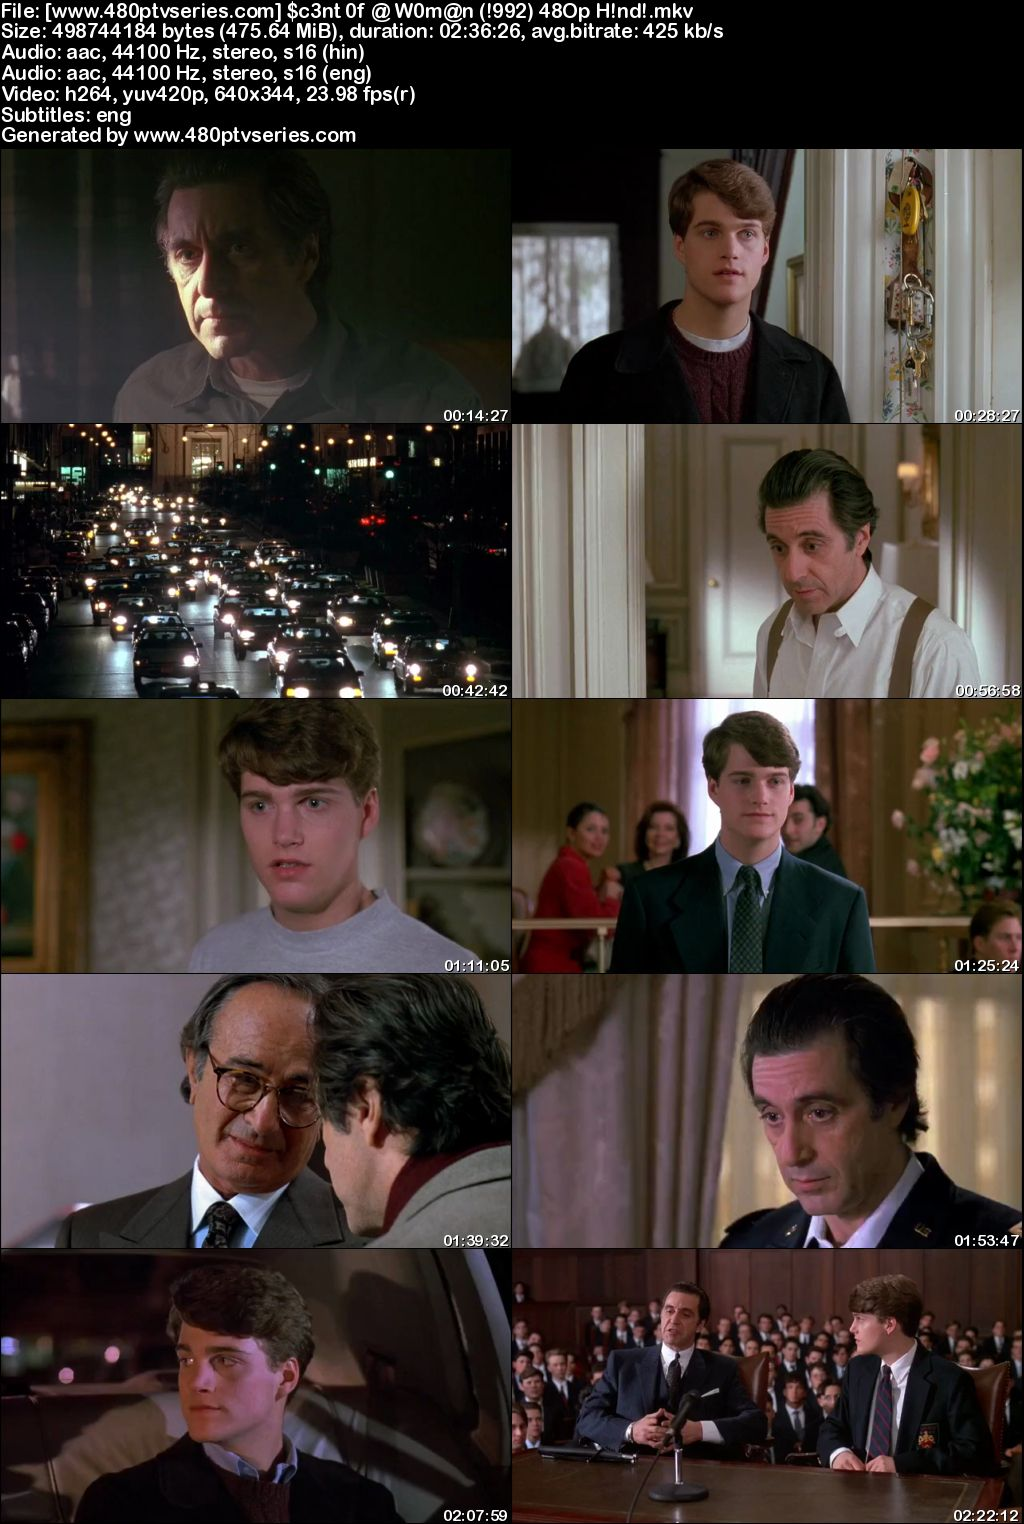 Scent of a Woman (1992) 450MB Full Hindi Dual Audio Movie Download 480p Bluray Free Watch Online Full Movie Download Worldfree4u 9xmovies